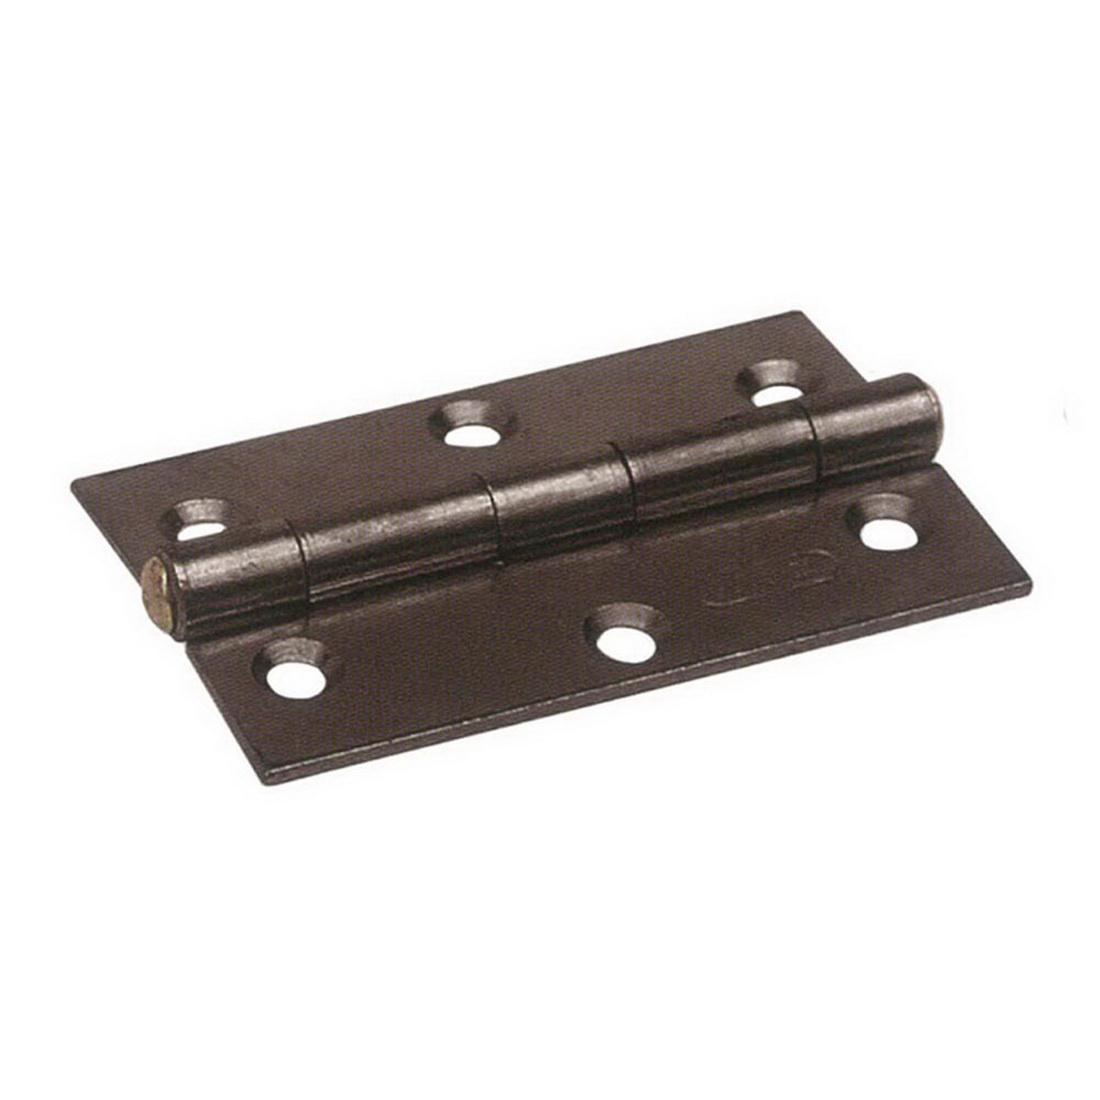 75 x 100mm Loose Pin Narrow Butt Hinge Florentine Bronze